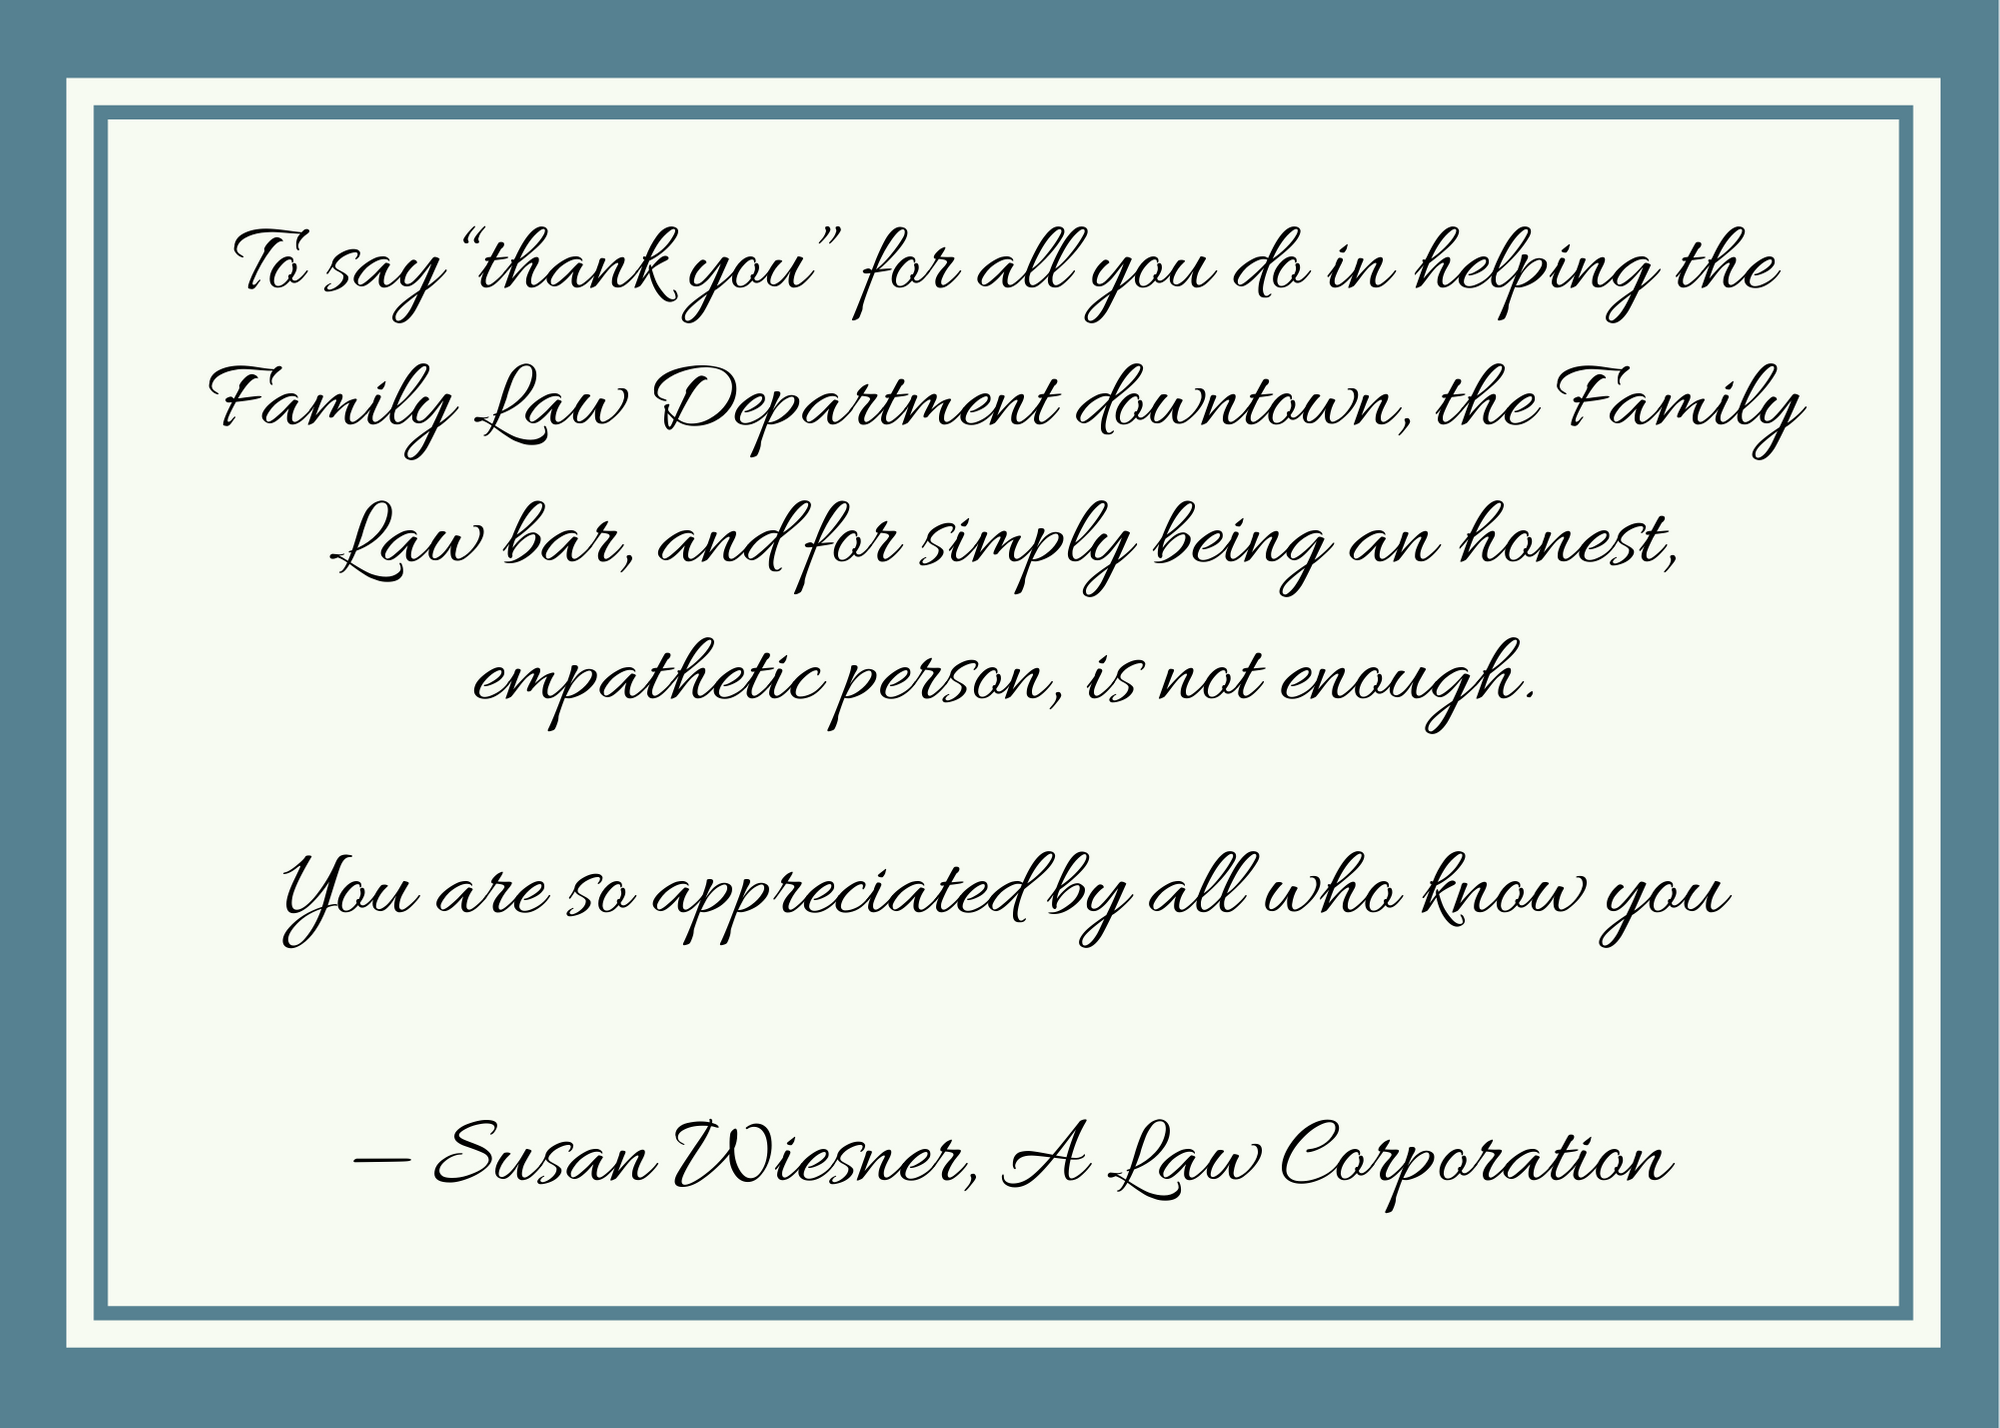 """To say """"thank you"""" for all you do in helping the Family Law Department downtown, the Family Law bar, and for simply being an honest, empathetic person, is not enough. You are so appreciated by all who know you - Susan Wiesner, A Law Corporation"""